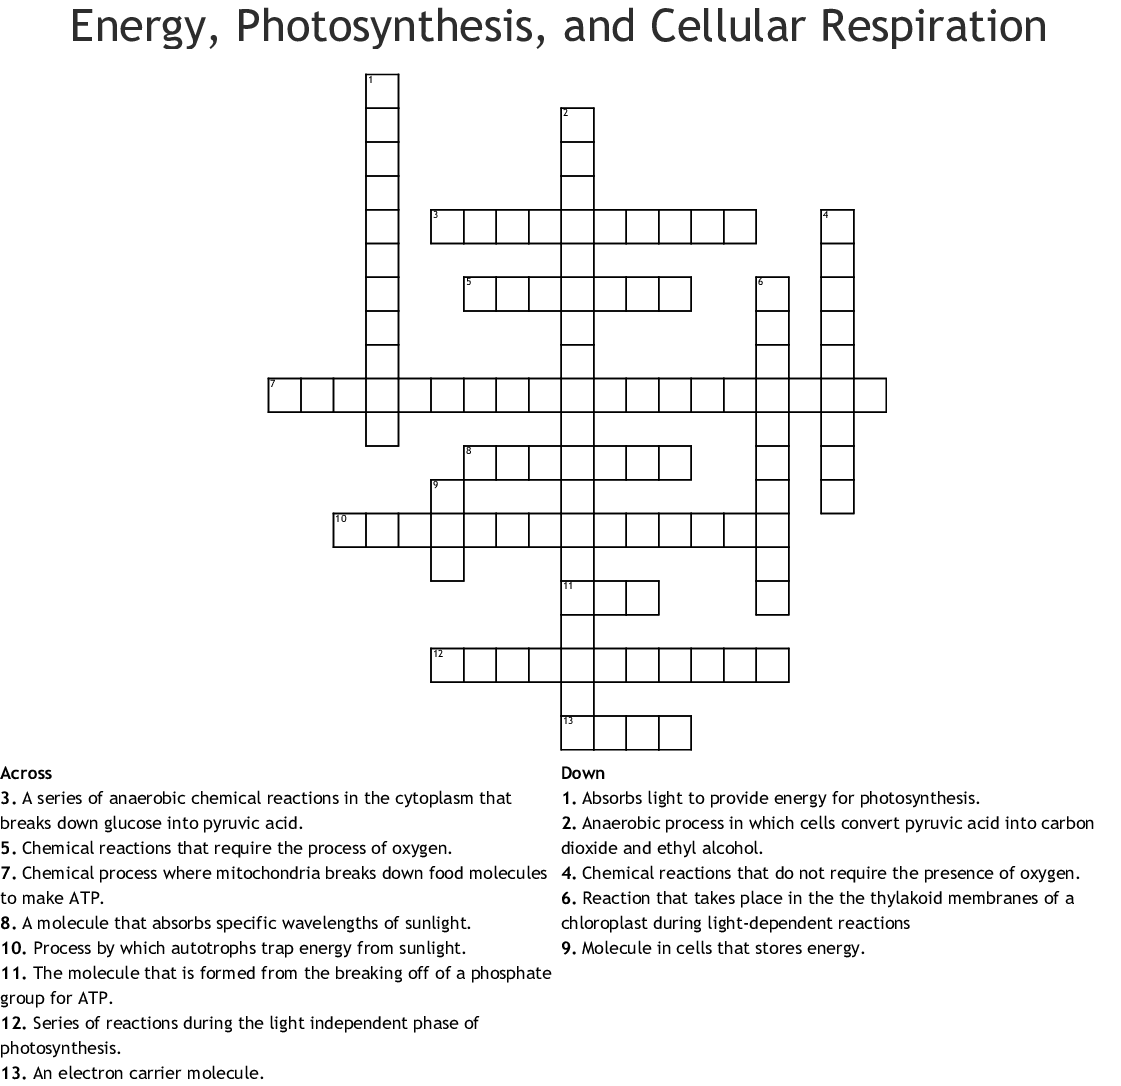 Photosynthesis And Cellular Respiration Crossword Puzzle